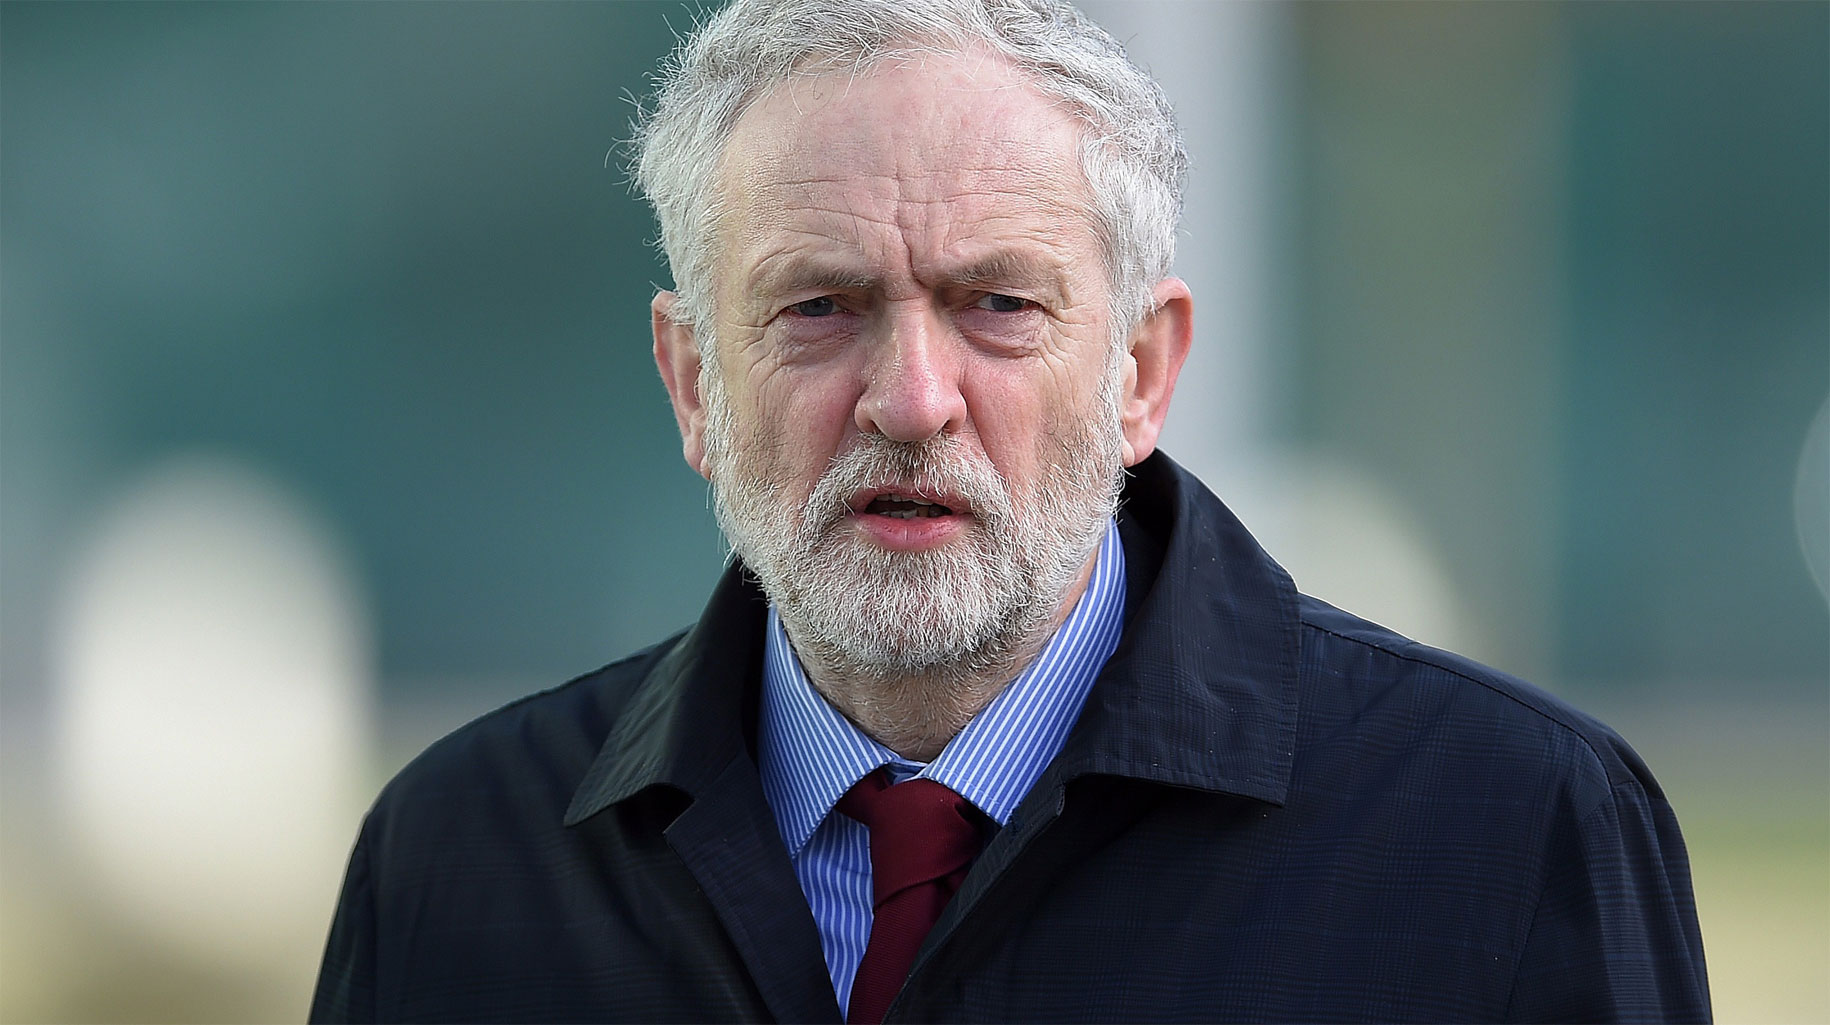 Jeremy Corbyn regrets comments about 'anti-Semitic' mural